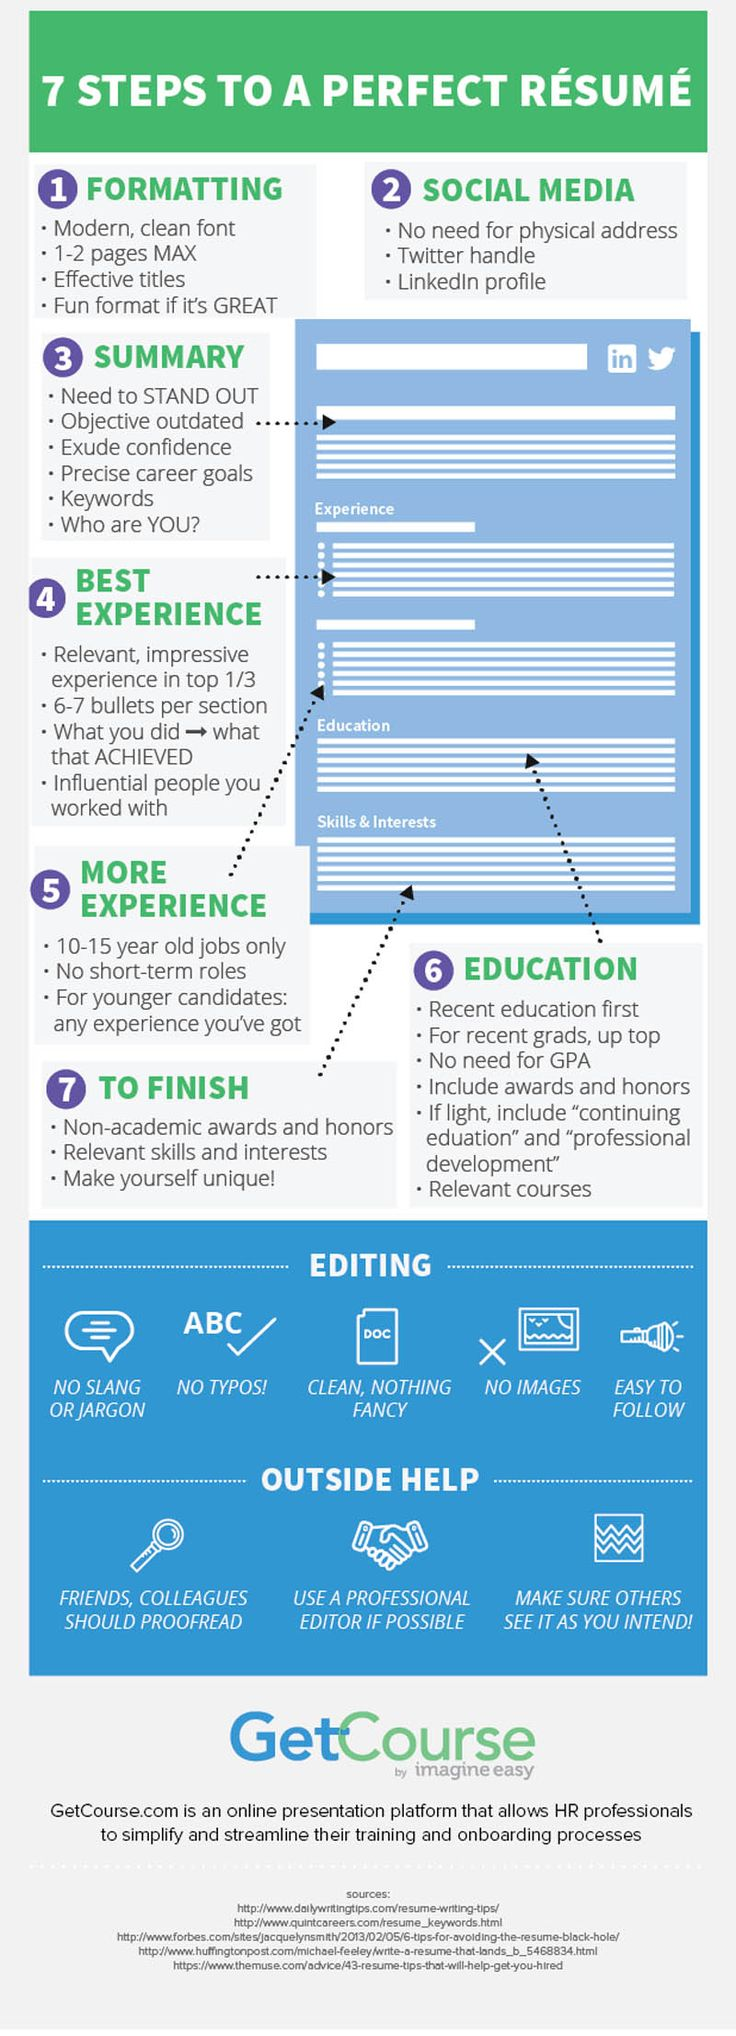 Infographic 7 Steps to a Perfect Resume | Infographics Creator